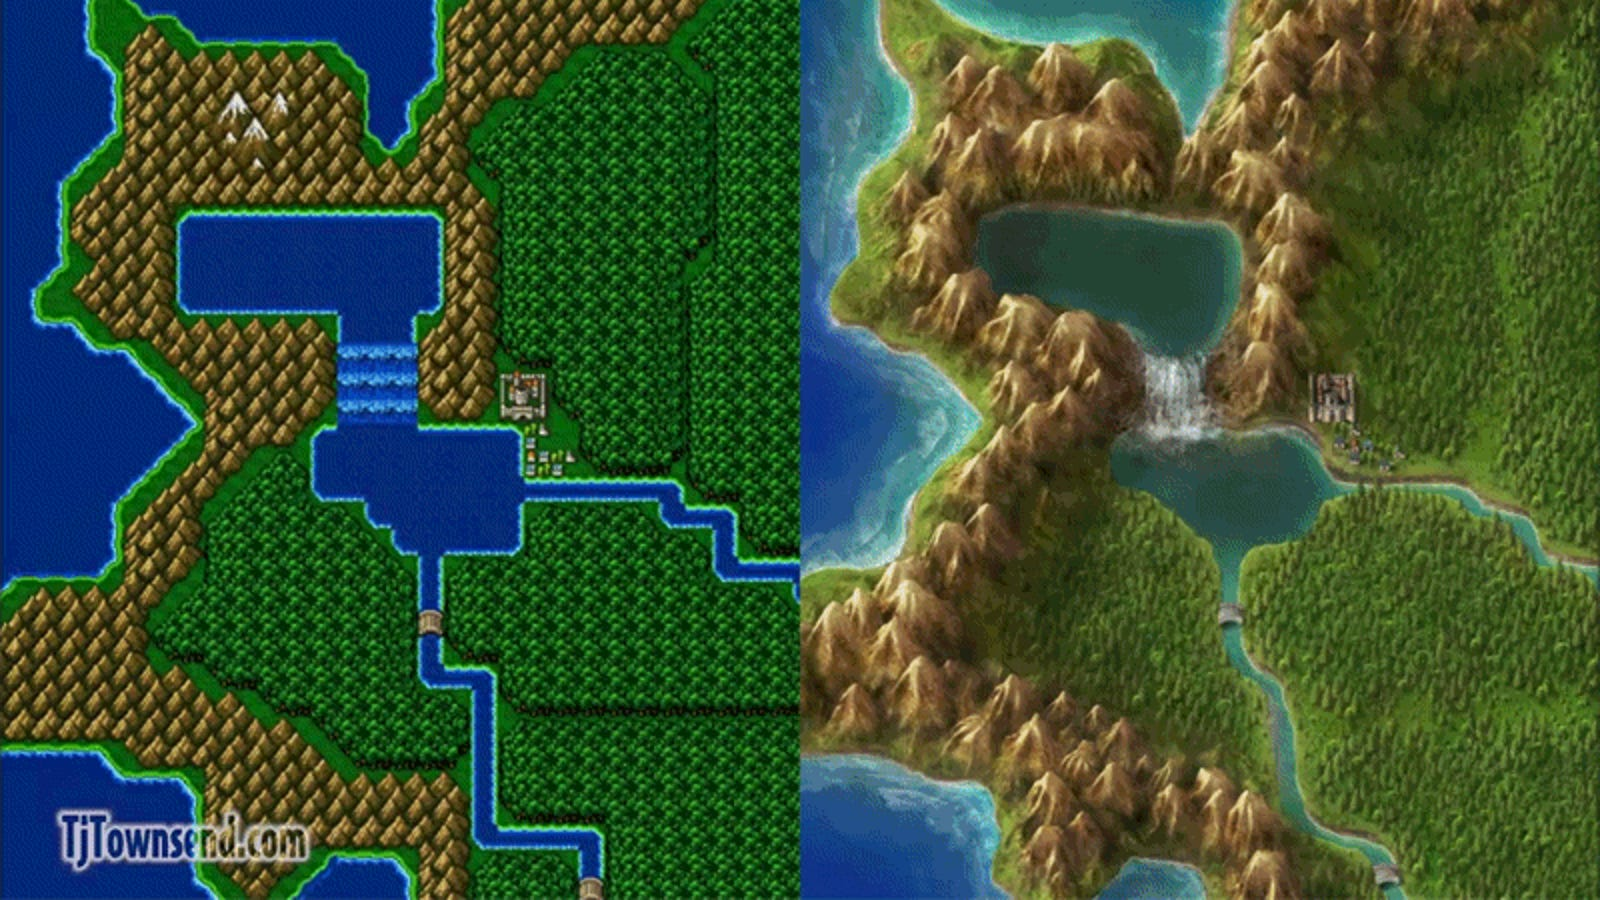 Artist Completely Redraws Final Fantasy IV\'s World Map